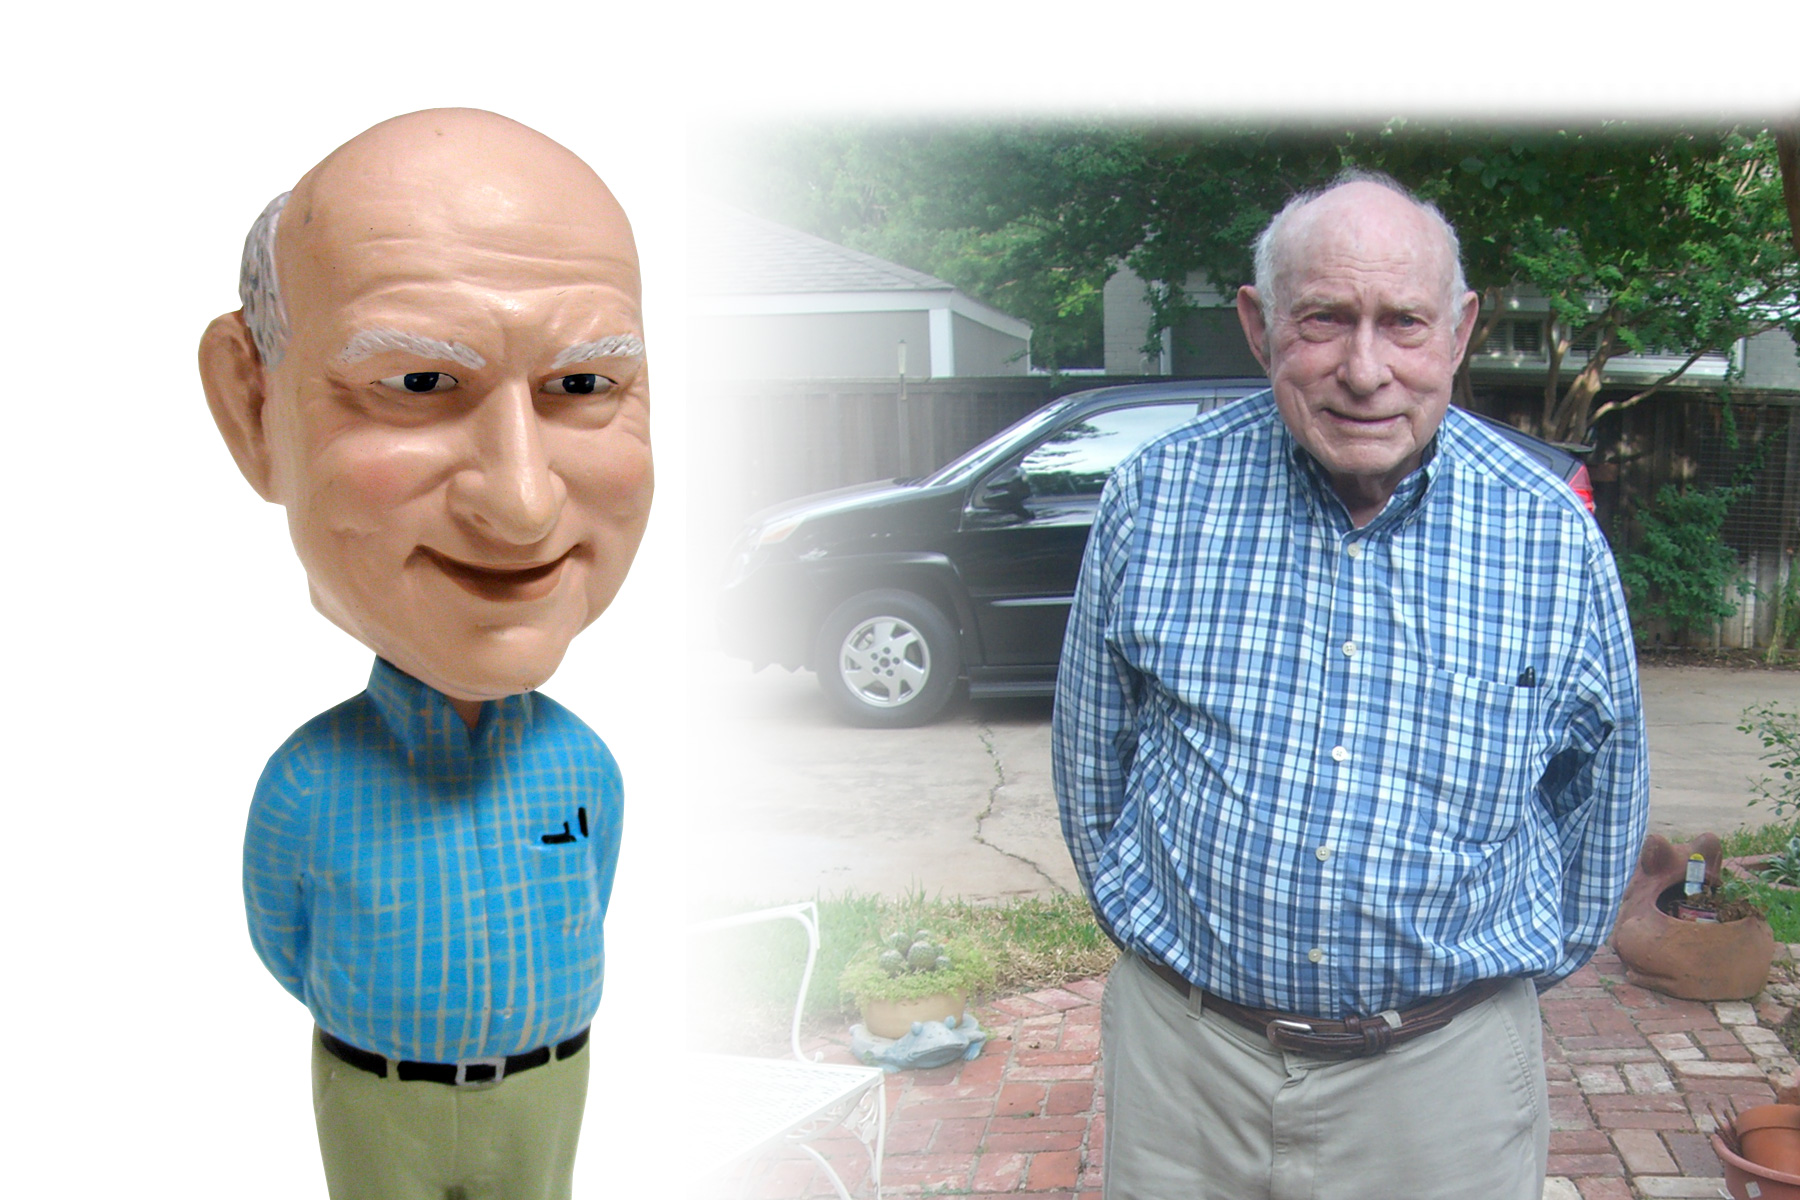 Different Styles of Customized Bobbleheads You Can Order